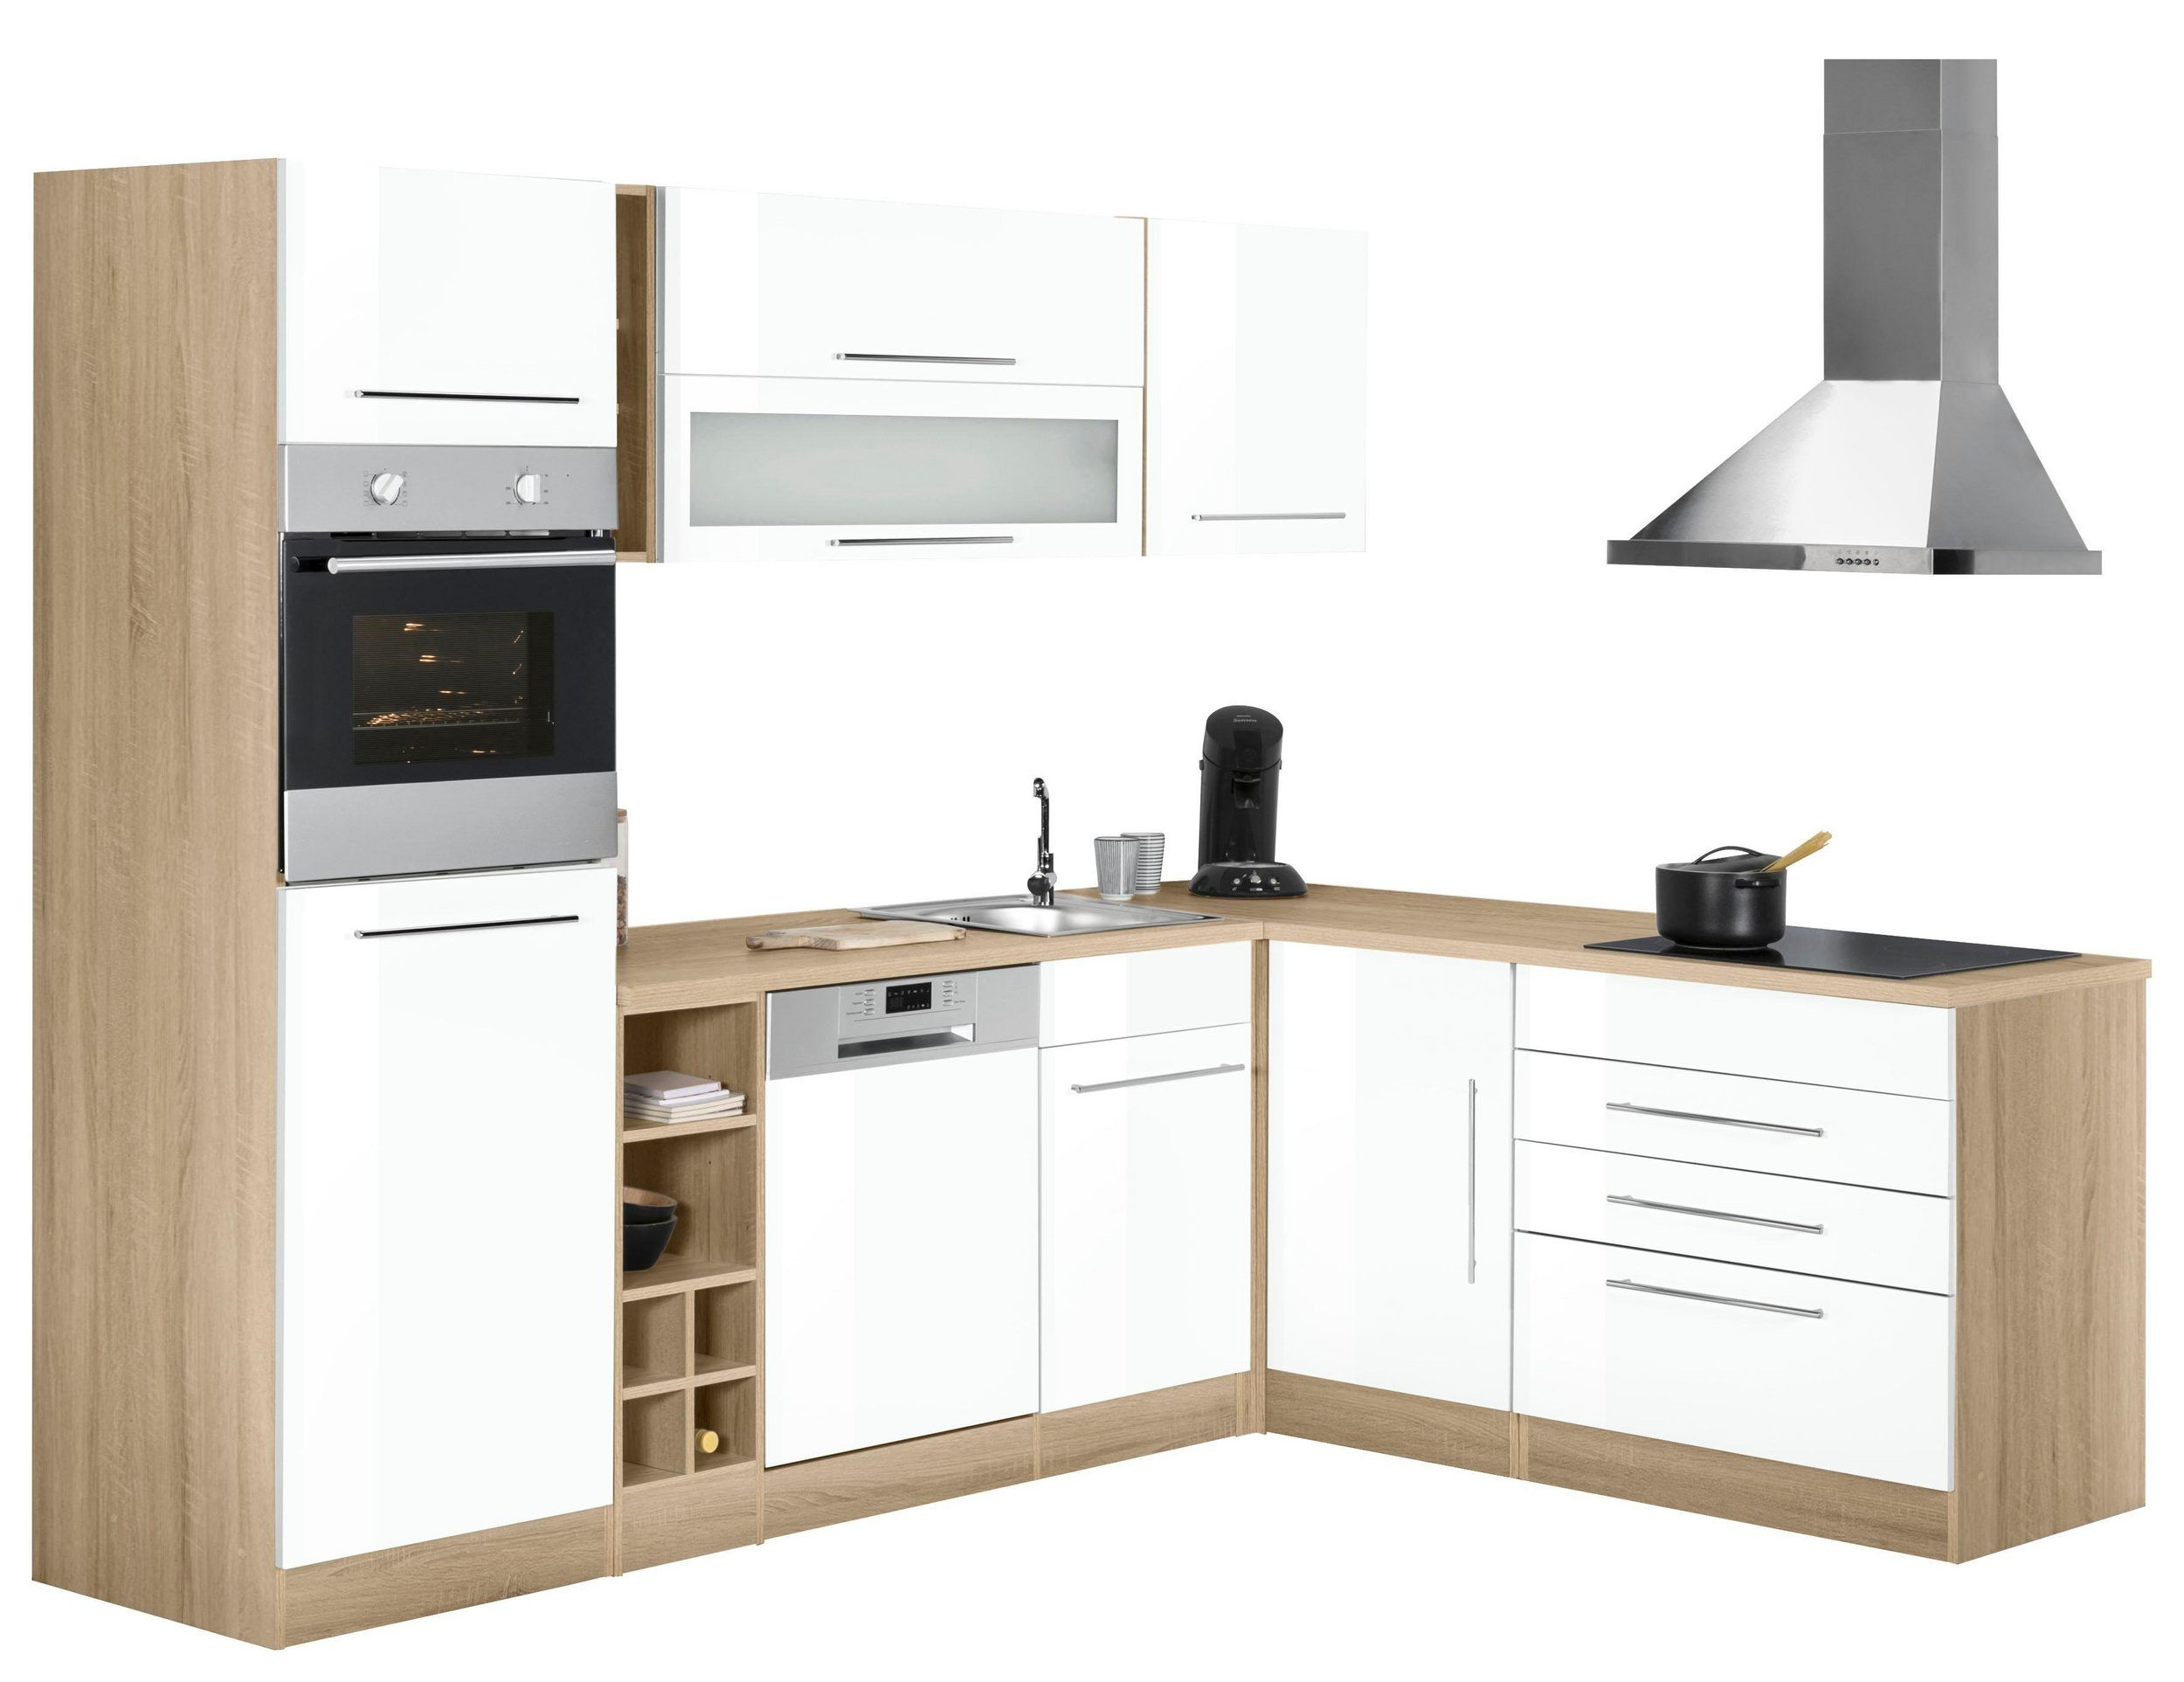 Held Mobel Kitchen Cabinet I Shape Held Kitchen Cabinets Home